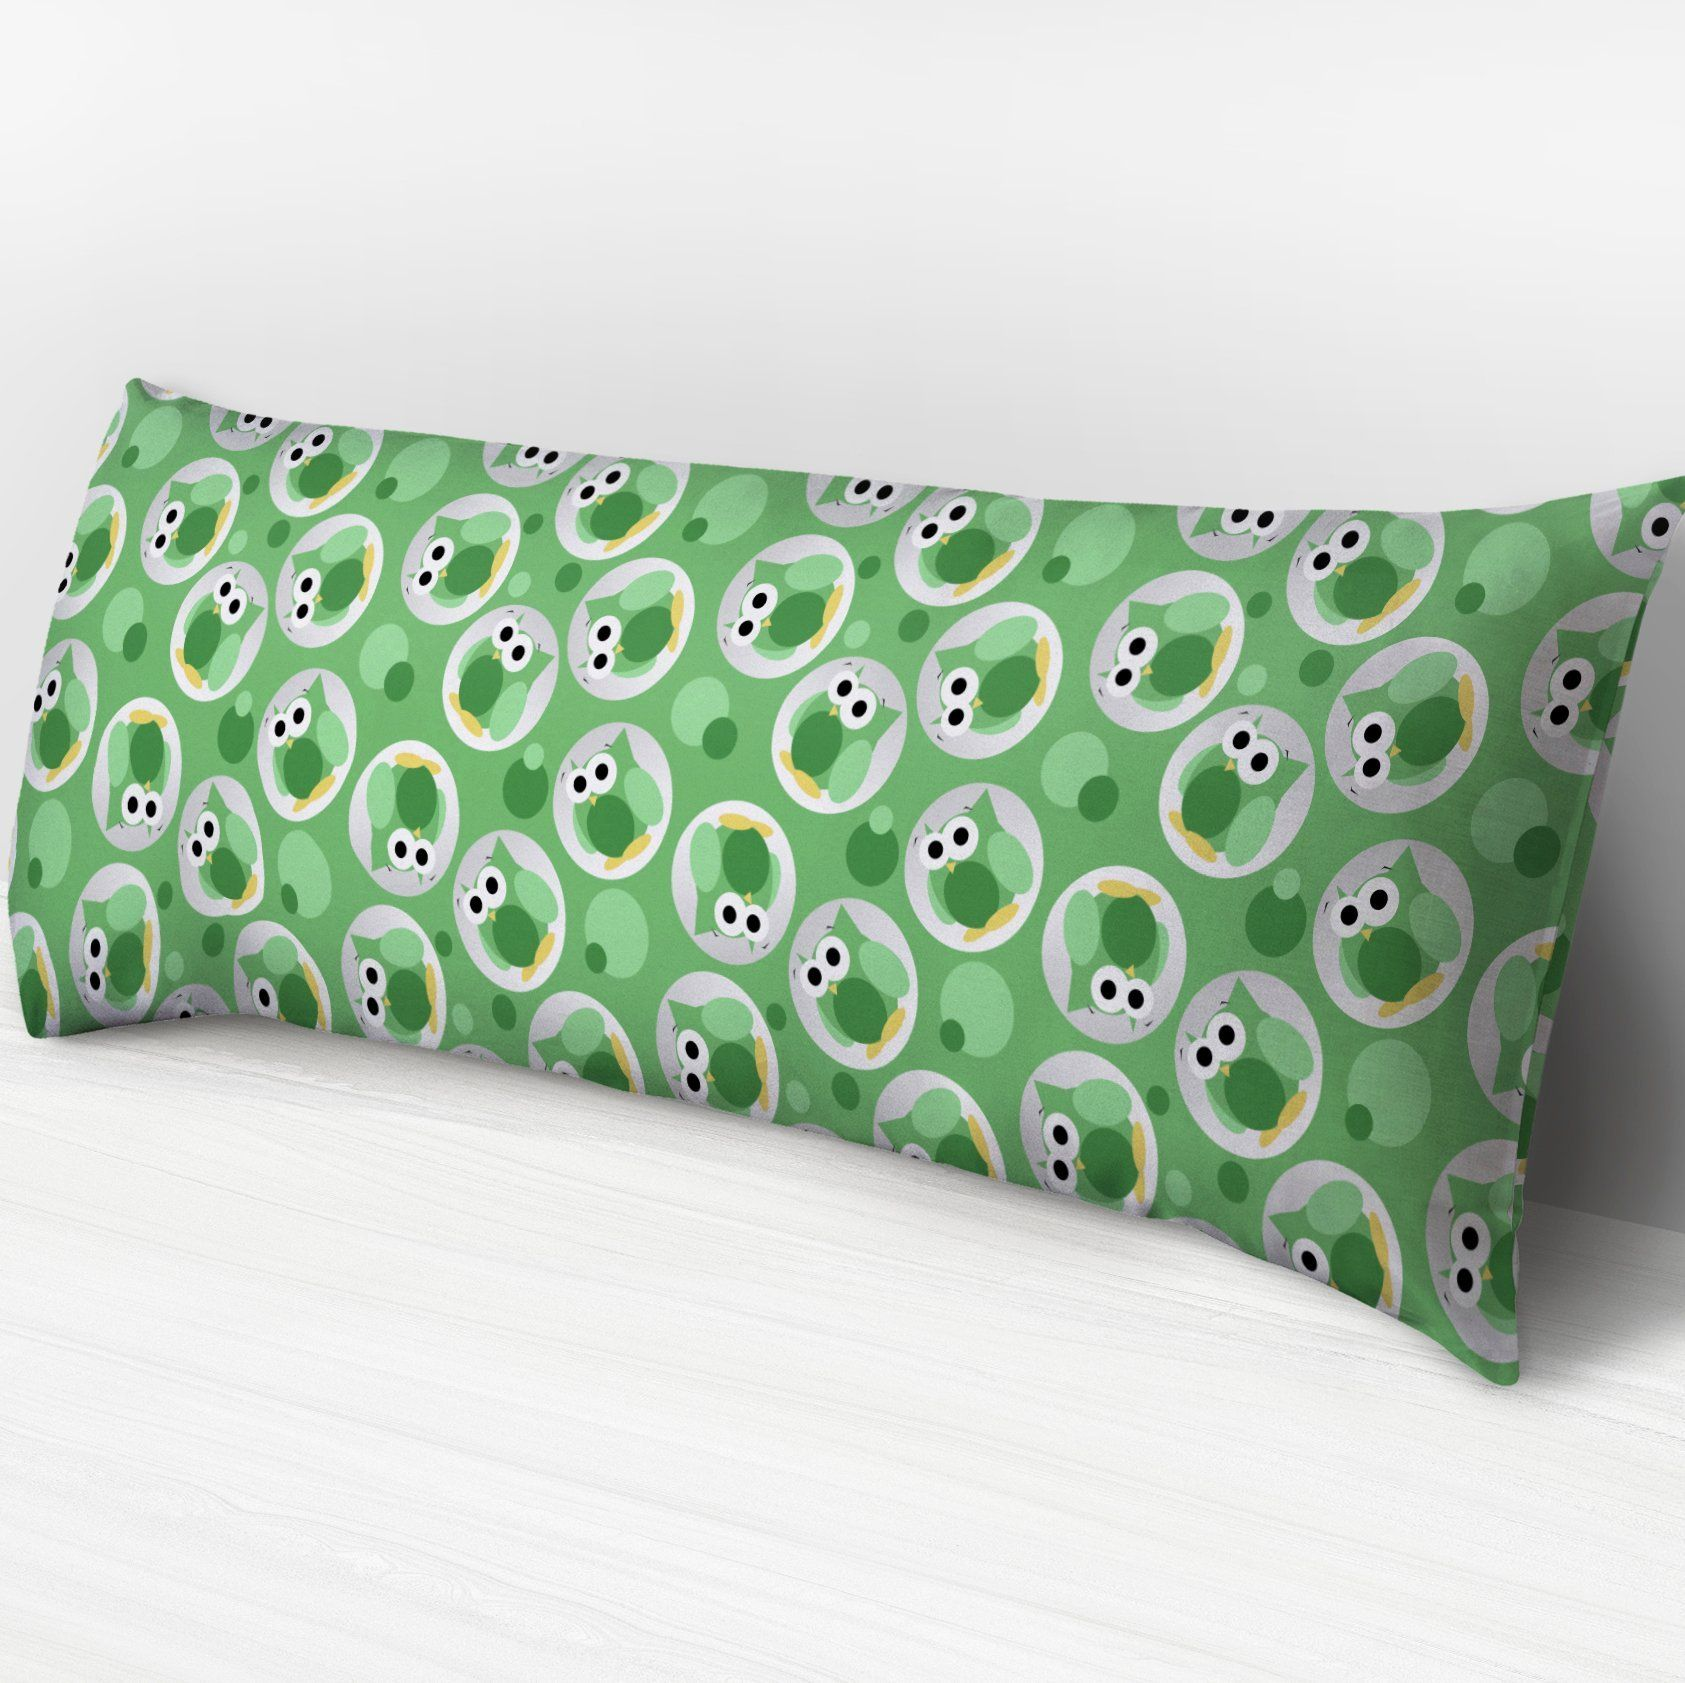 Funny Cute Green Owl Pattern Body Pillow or Cover | Owl patterns ...